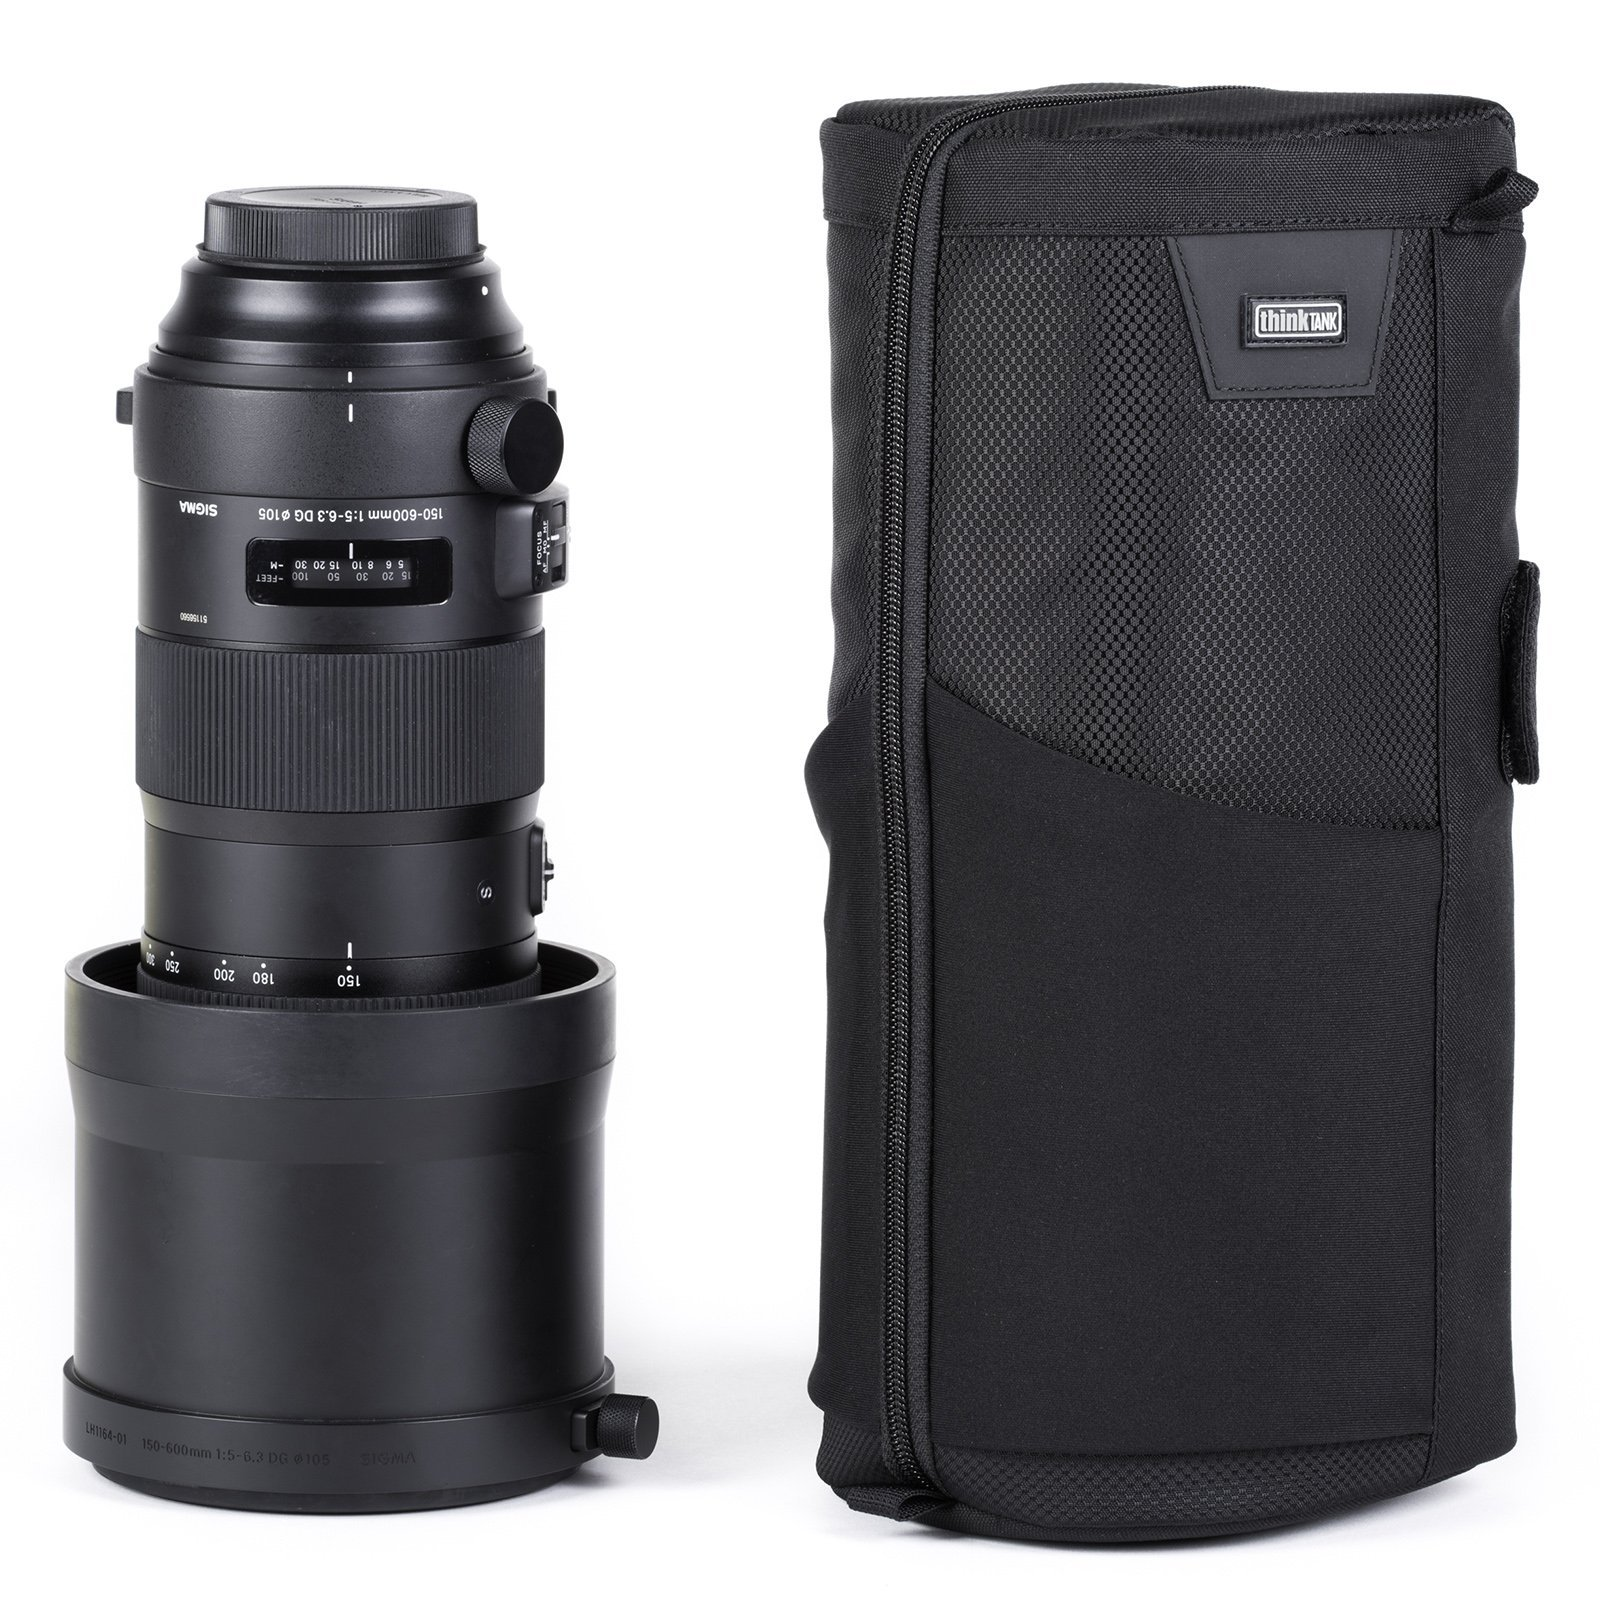 Think Tank Photo Lens Changer 150 V3.0 Lens Case (Black) by Think Tank